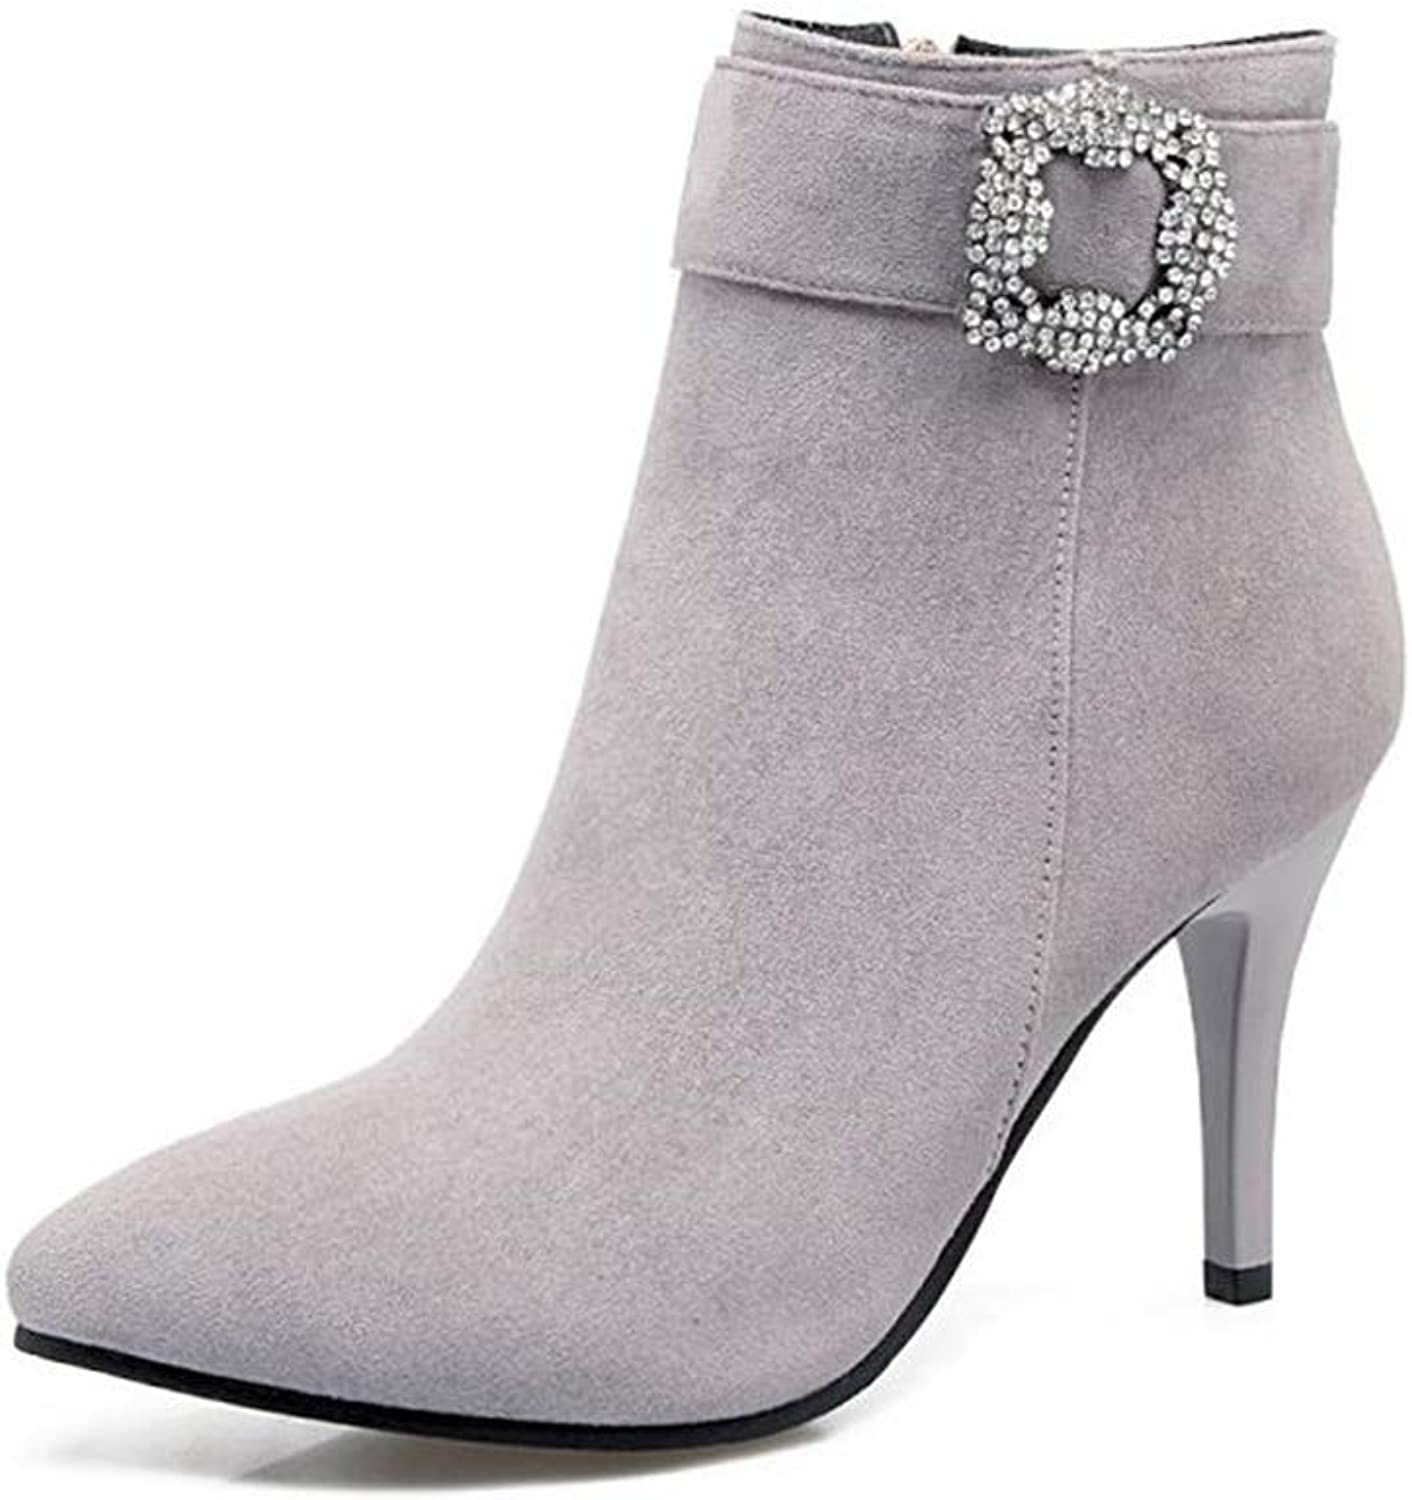 CHENSF Women's Strap Buckle Stiletto Heel Ankle Booties